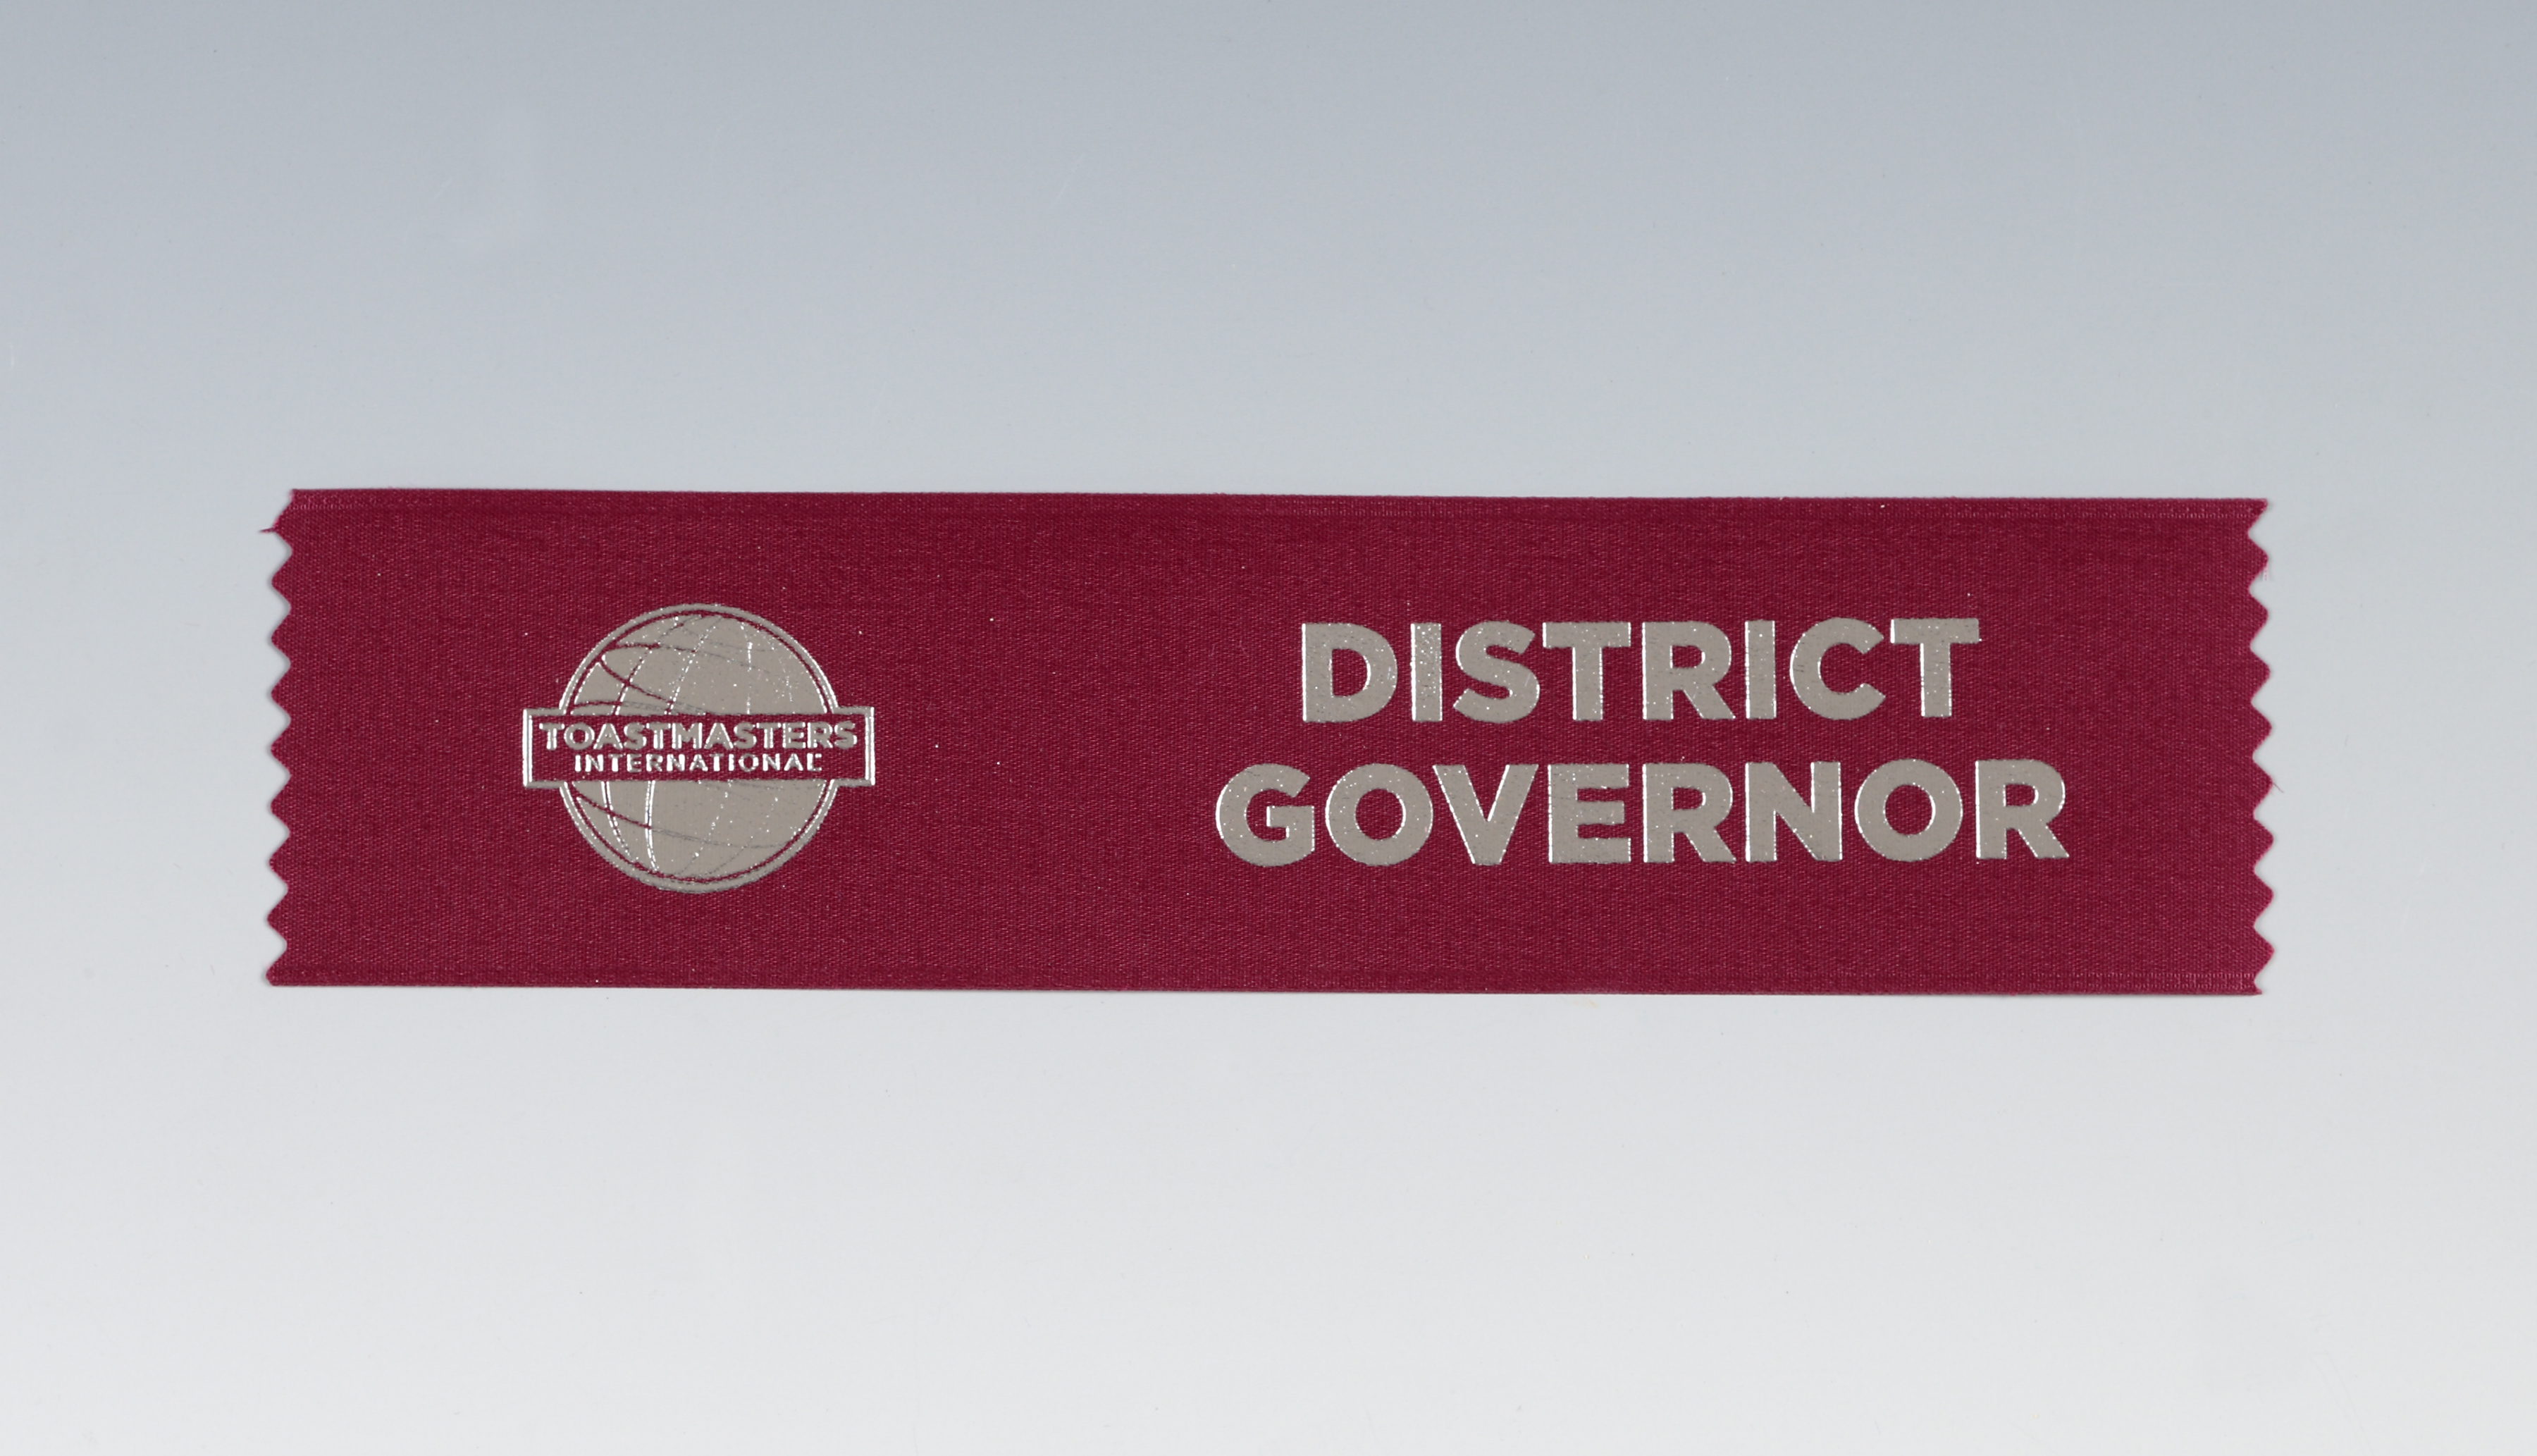 District Governor Ribbon